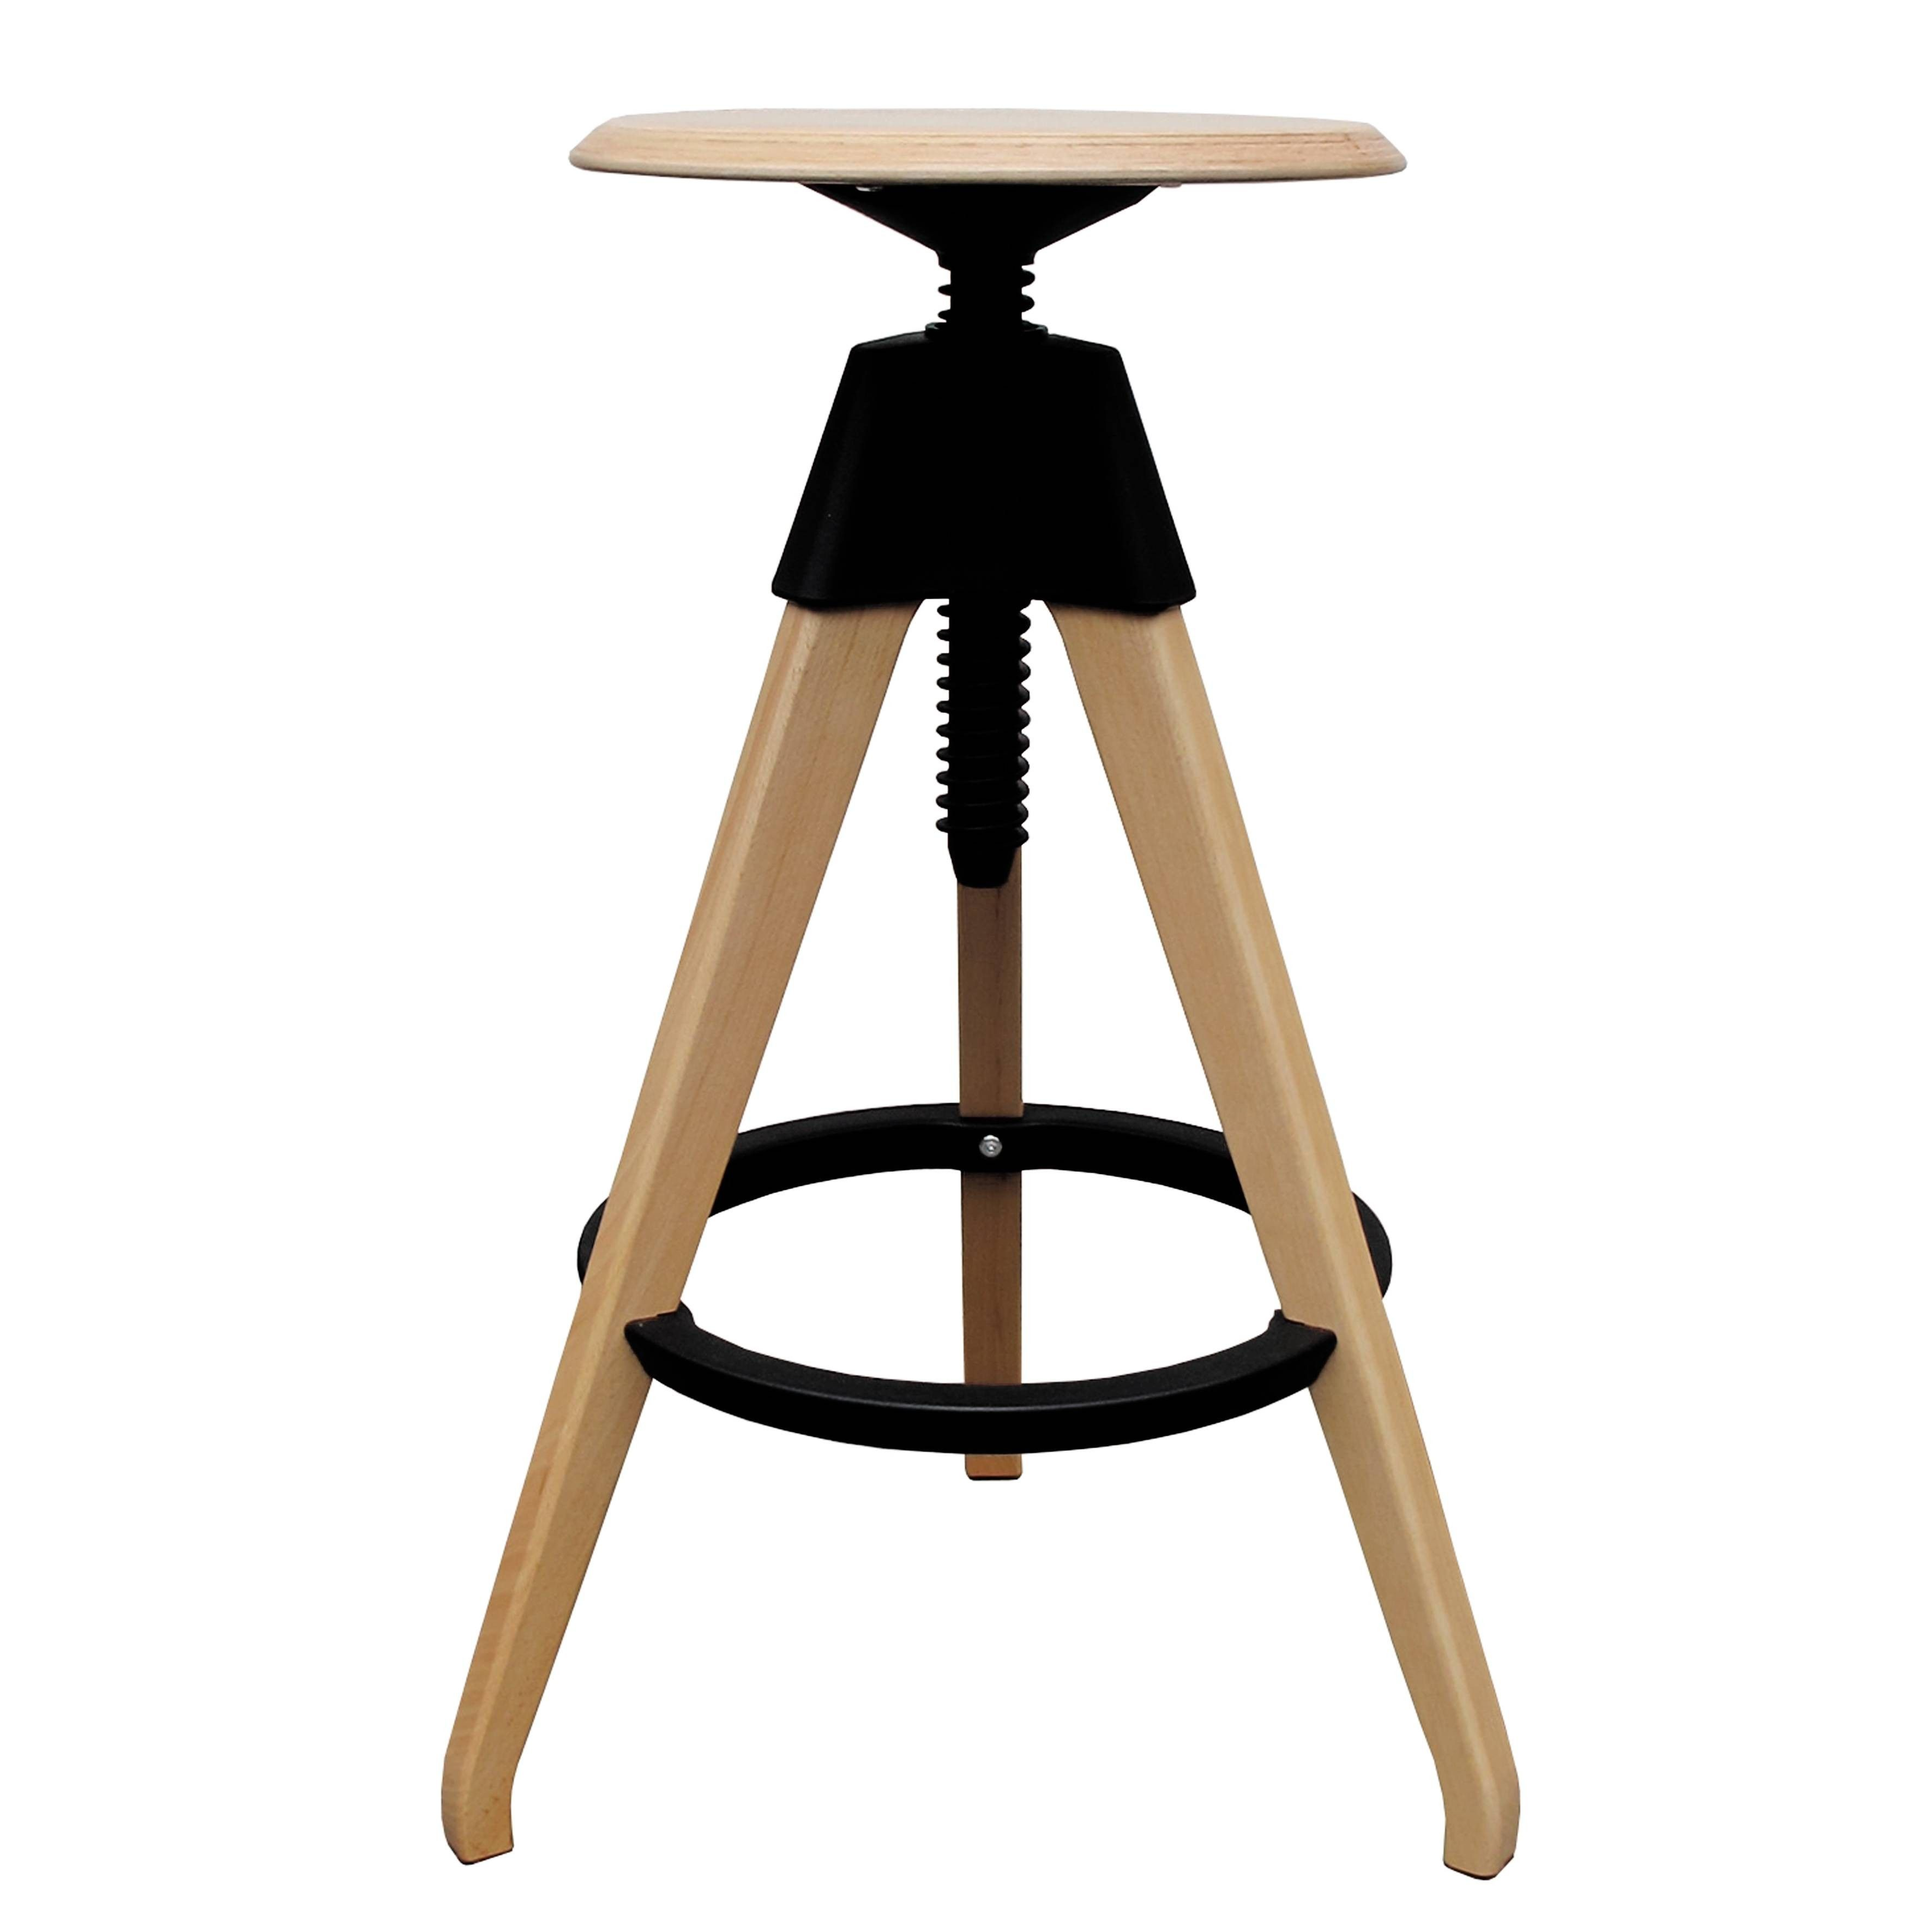 Super Pin By Davosskates On Home Design Tripod Lamp Furniture Theyellowbook Wood Chair Design Ideas Theyellowbookinfo